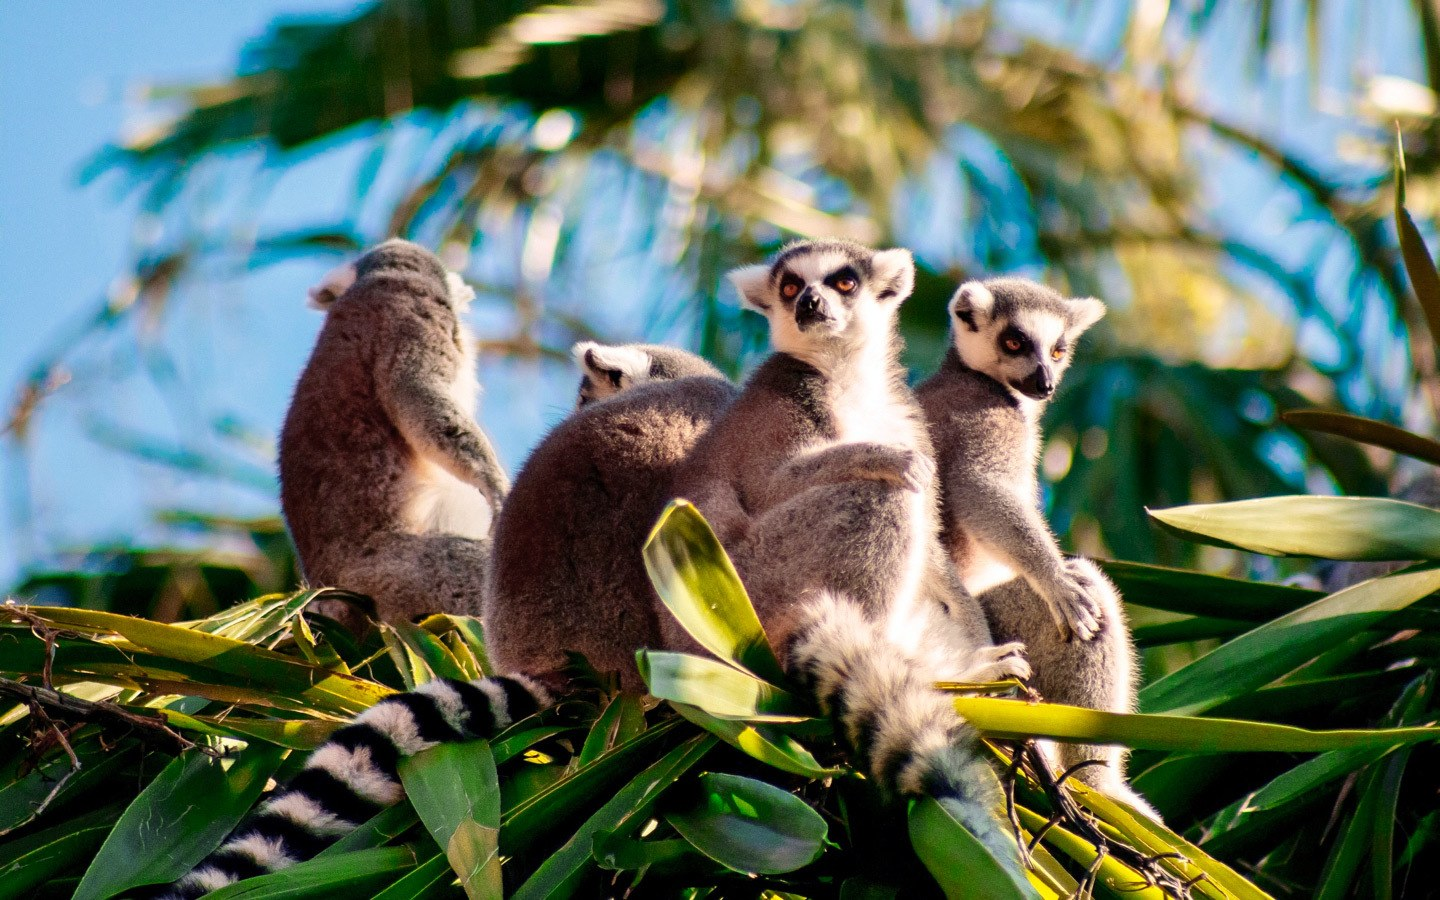 A solo travel trip to see Lemurs in Madagascar